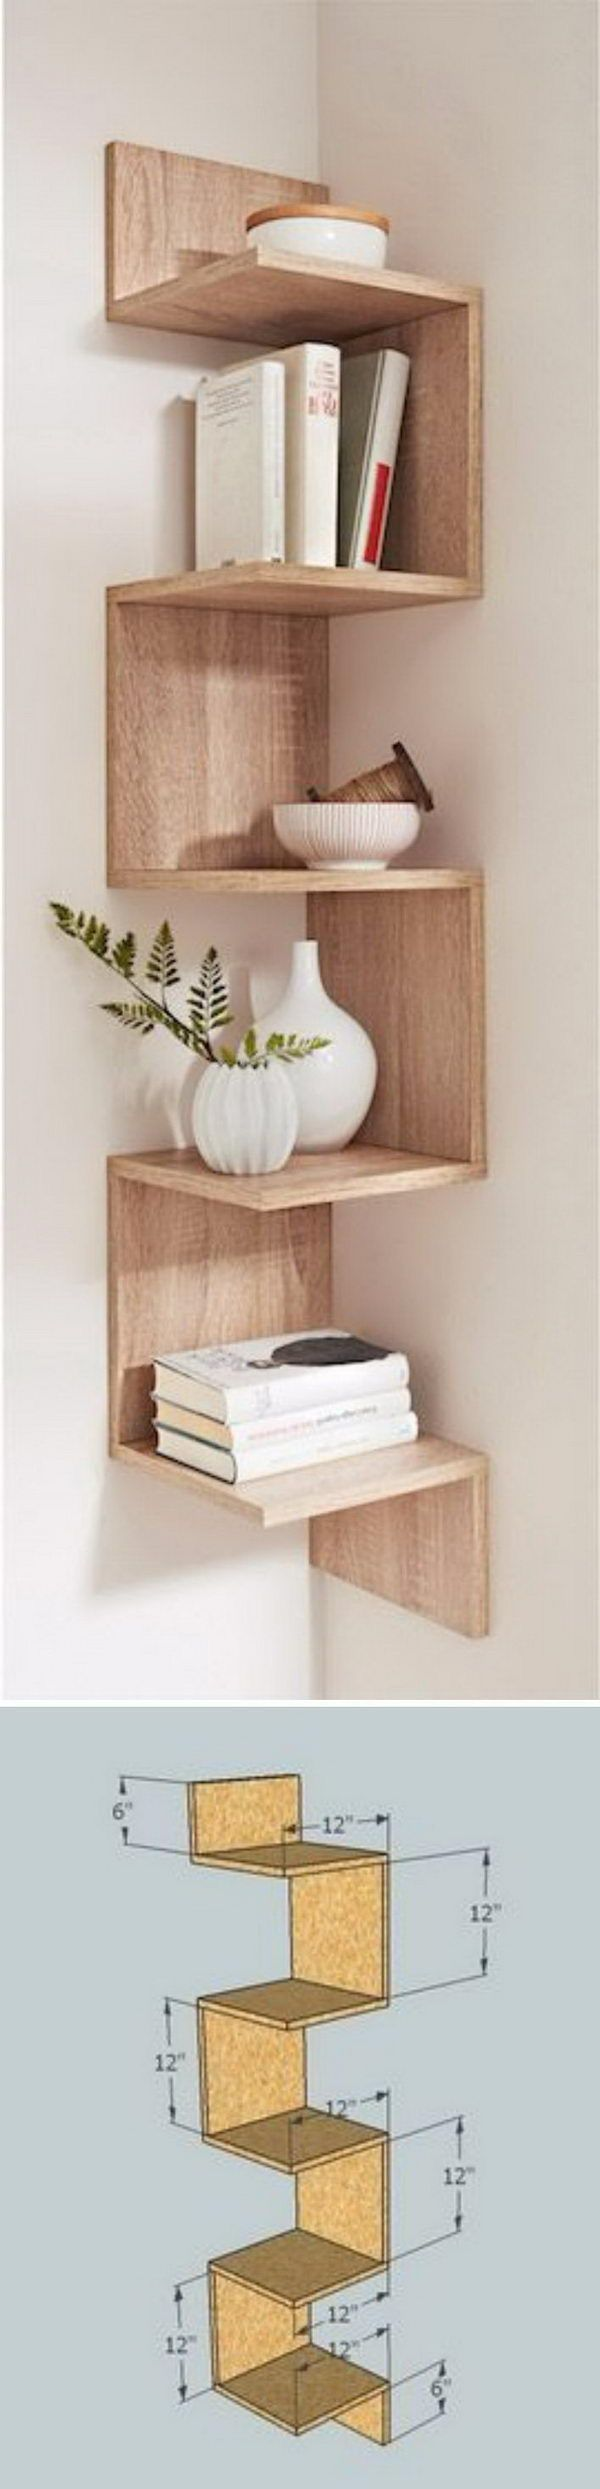 Sonja used the reclaim paint color pebble by caromal colours a - Alternating Corner Walmount Shelve Where To Find A Corner Shelf In France And Quebec